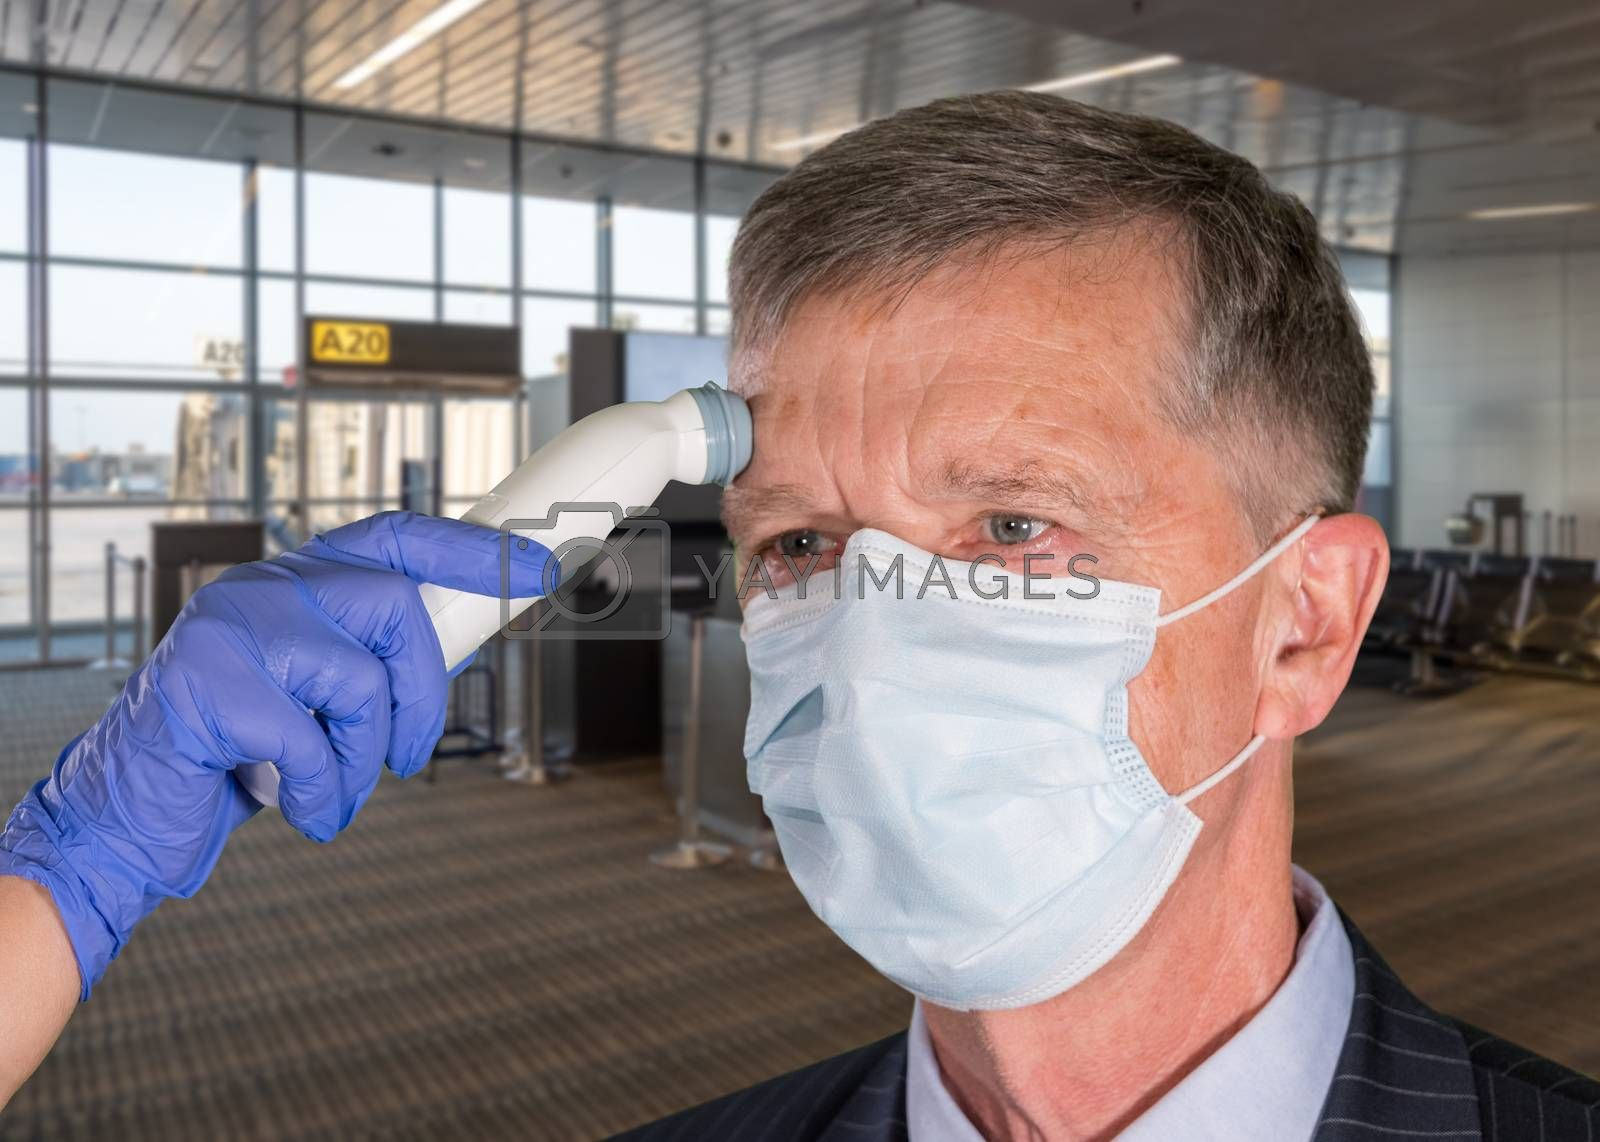 Mockup of airport terminal with senior adult wearing mask having a fever or temperature test taken to check coronavirus status